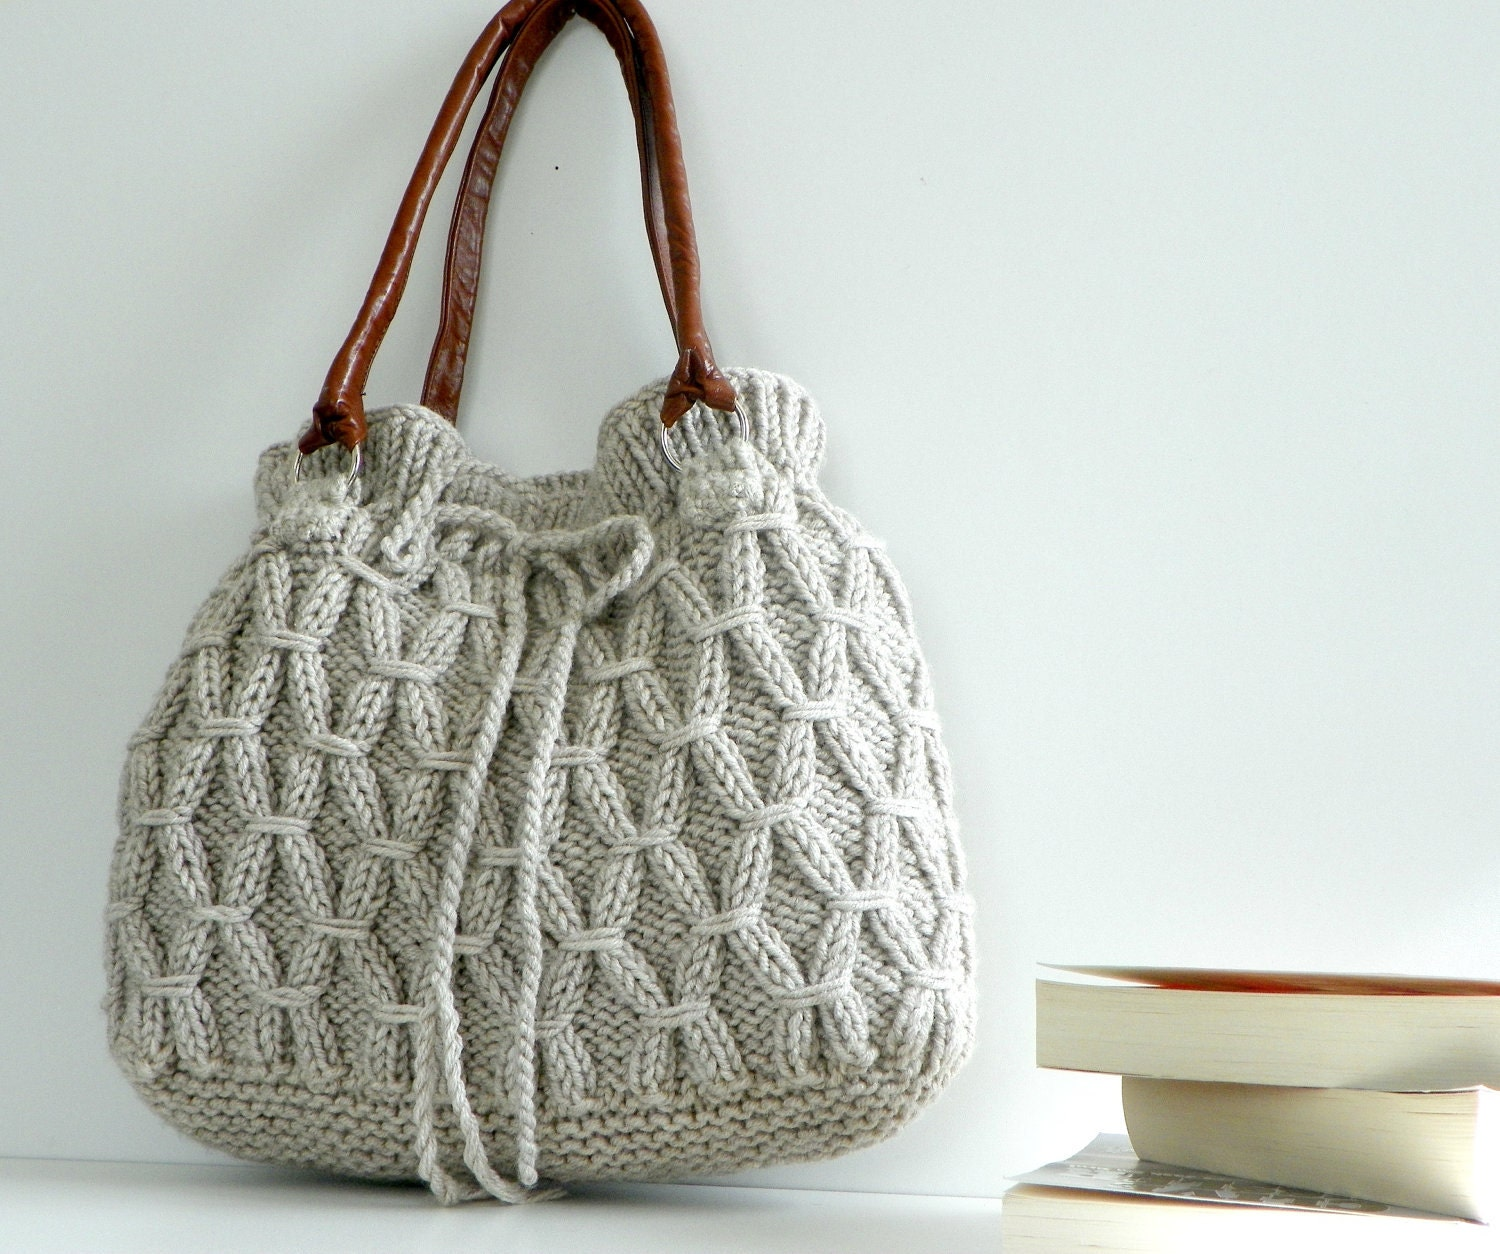 Knitted Purse : Bag NzLbags Beige-Ecru Knitted Bag Handbag Shoulder by NzLbags